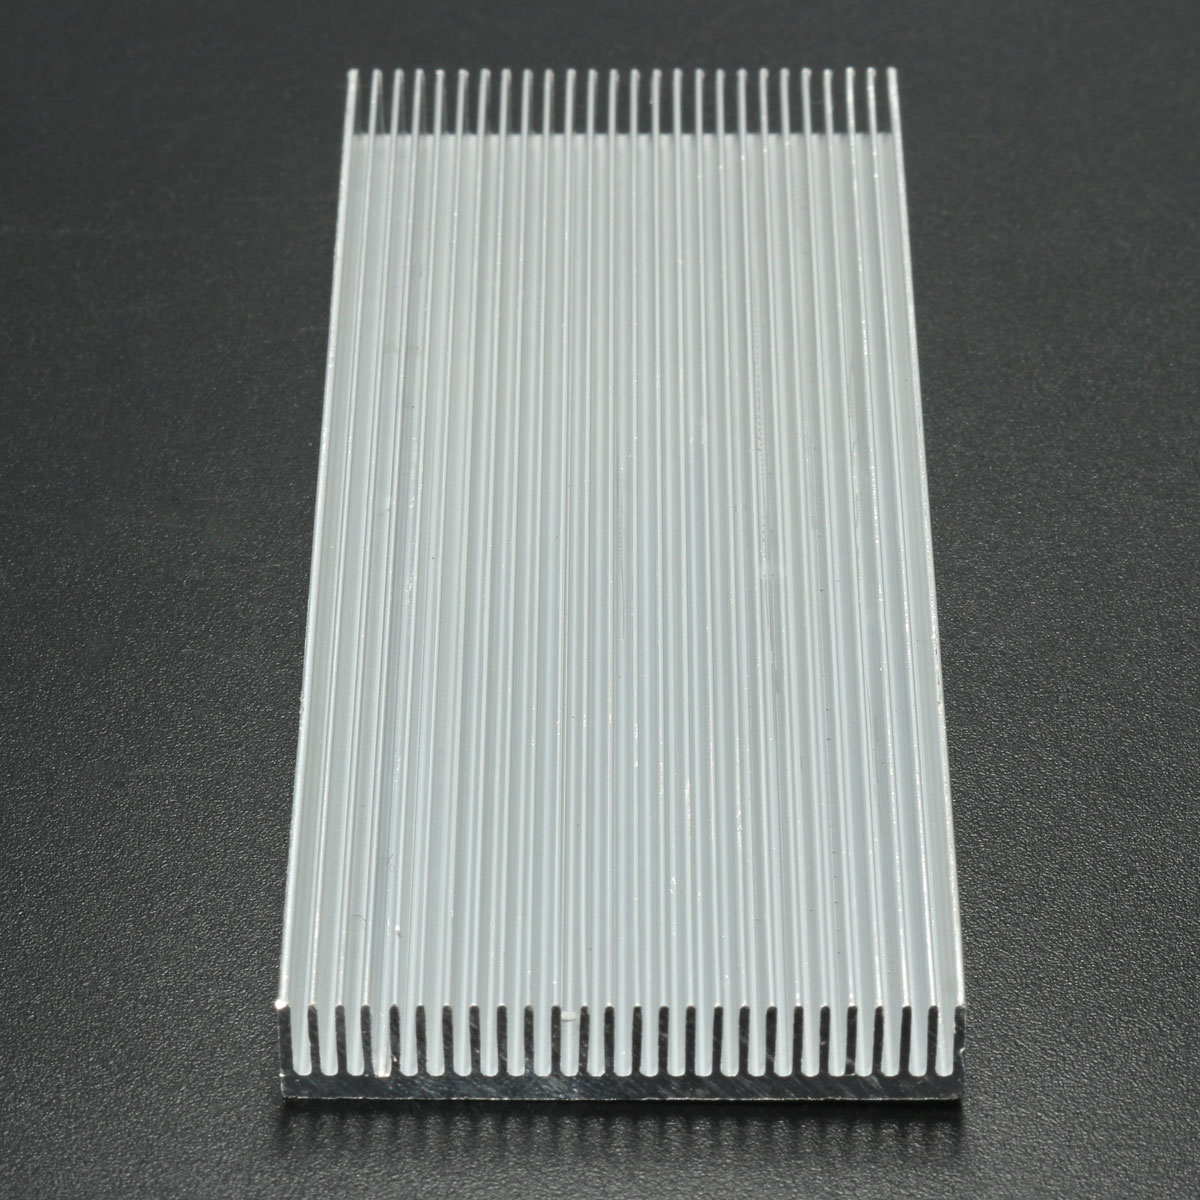 White 100*41*8mm 26-tooth Aluminum Fin Aluminum Sheet With  Heat Dissipation Function Excellent Quality Fast Delivery